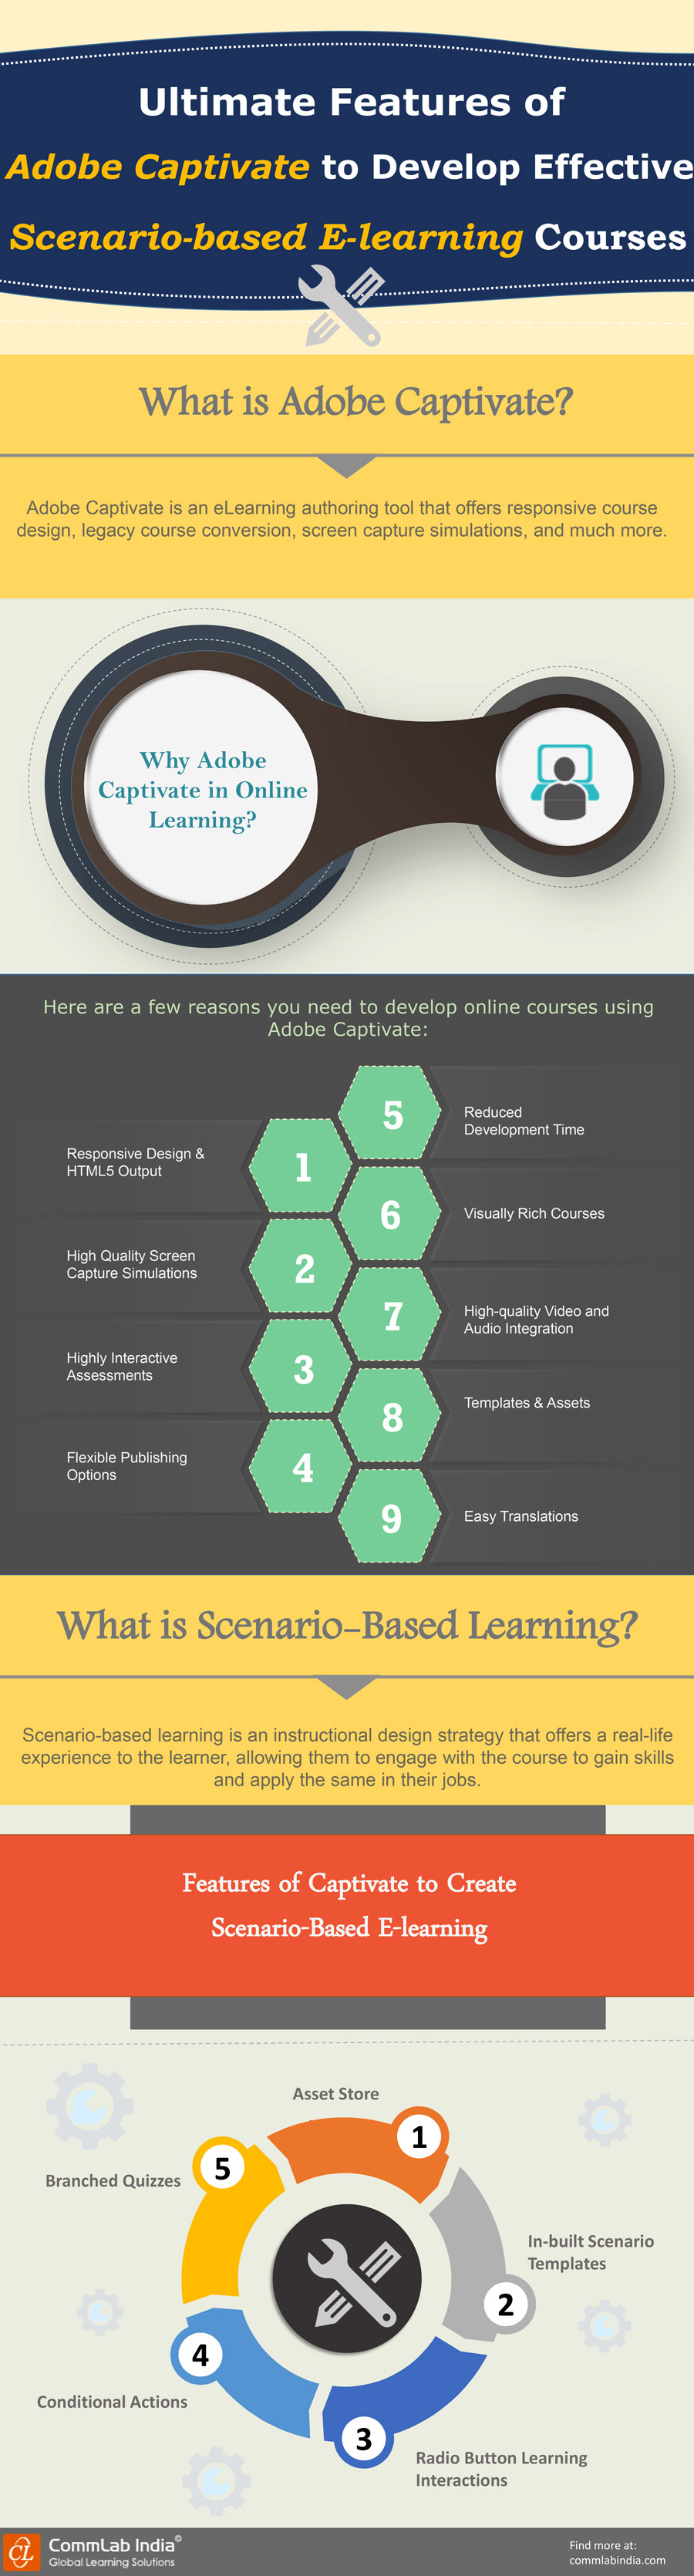 Ultimate Features of Adobe Captivate to Develop Engaging Scenario-based E-learning Courses[Infographic]